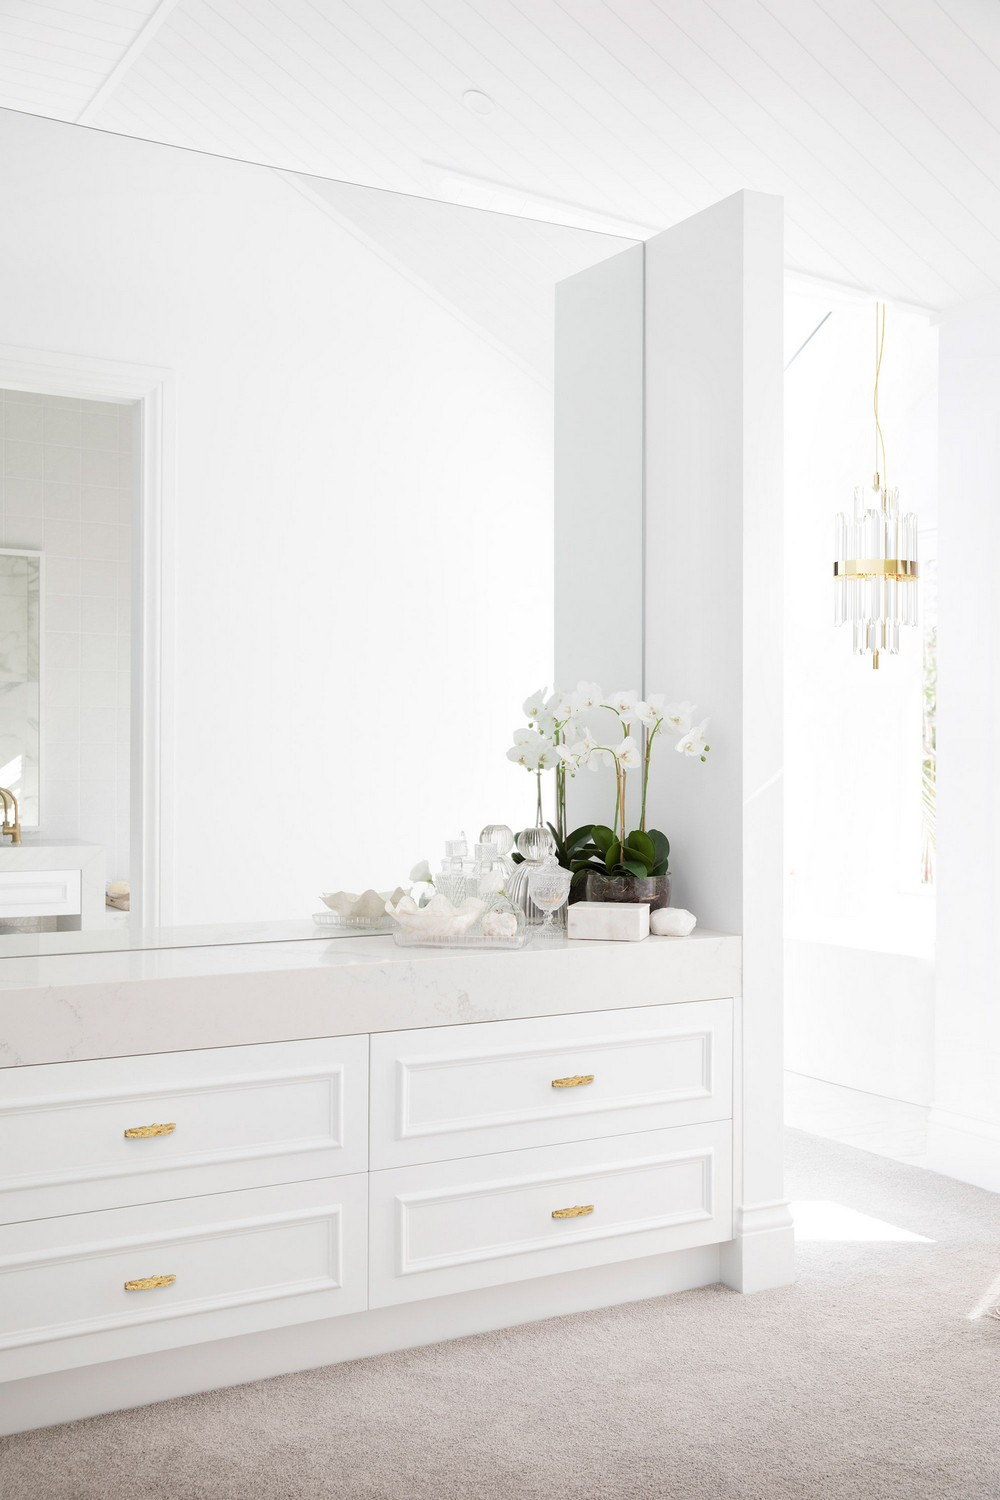 25 Drawer Handles to Modernize Your Furniture Designs 4